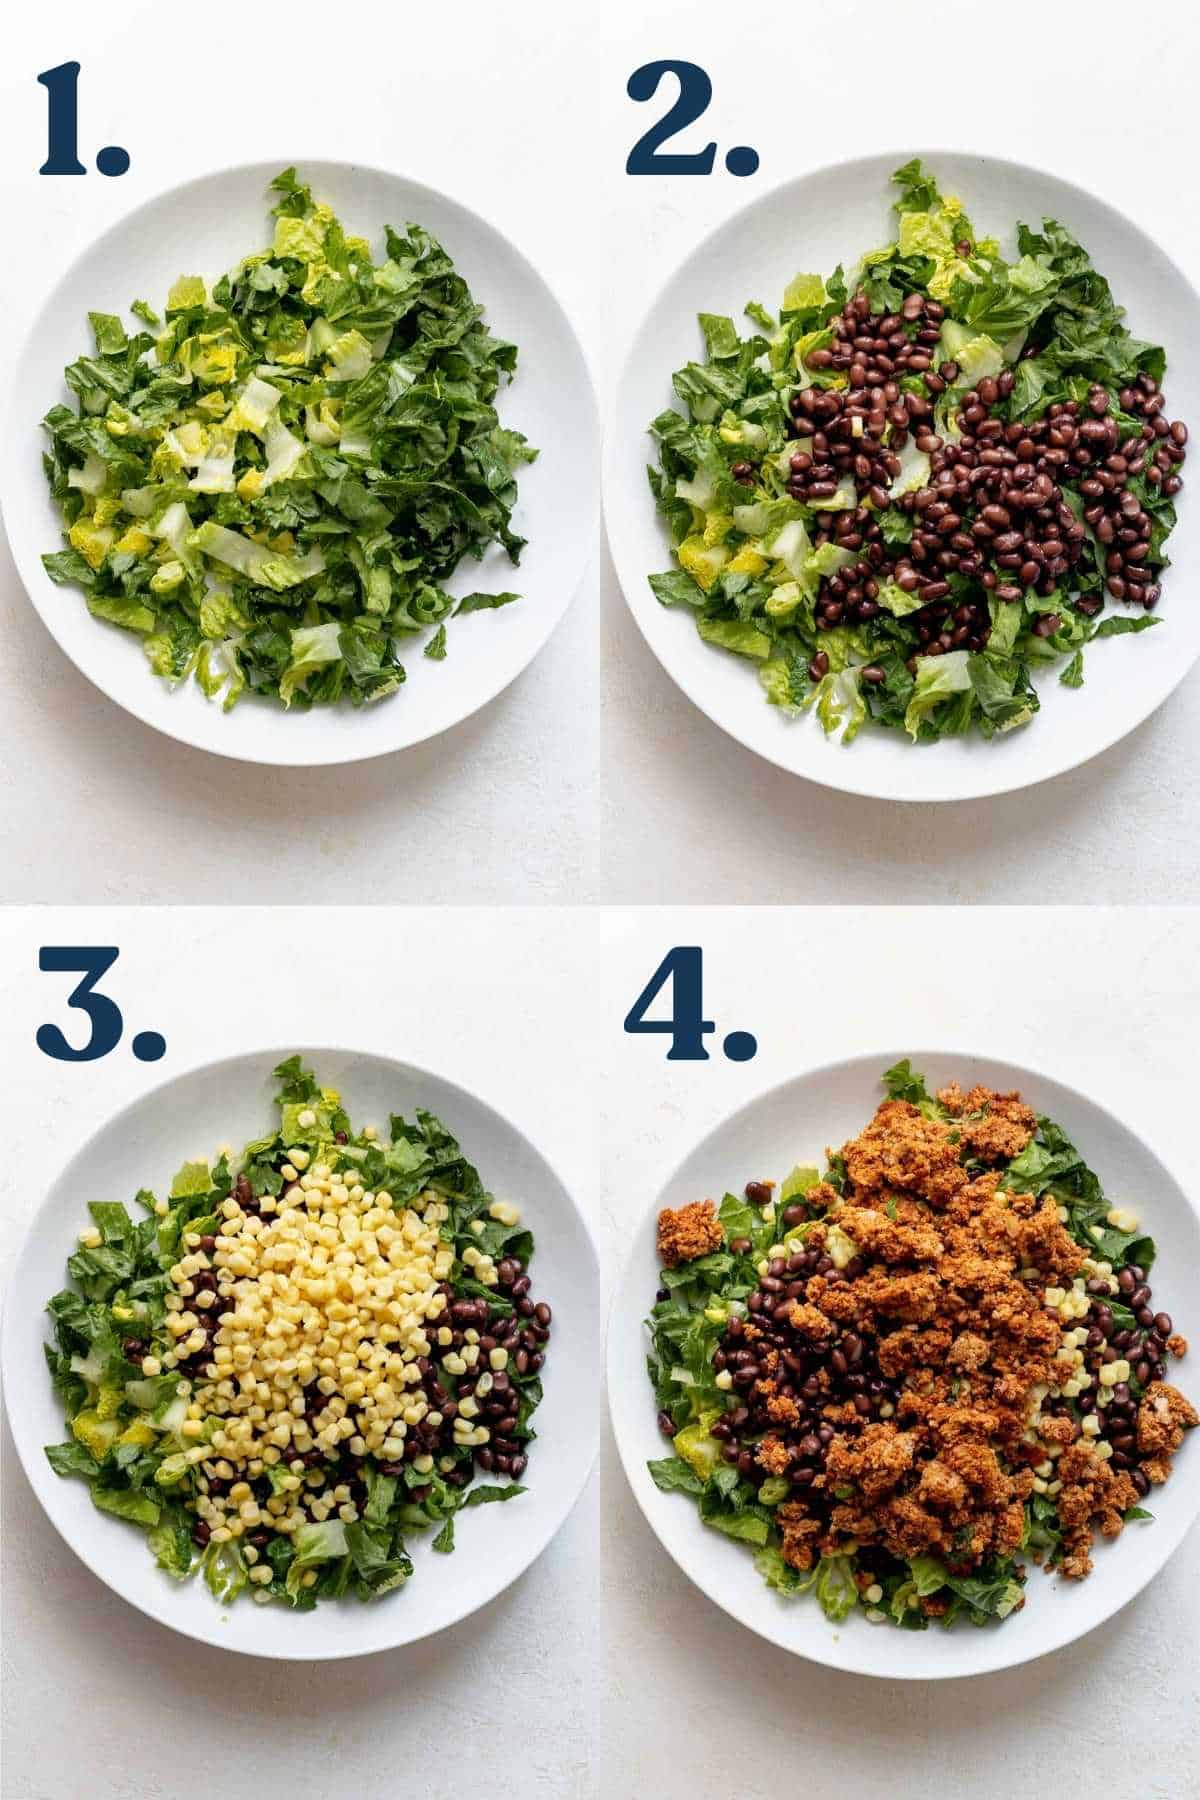 Step by step process of how to make the salad.